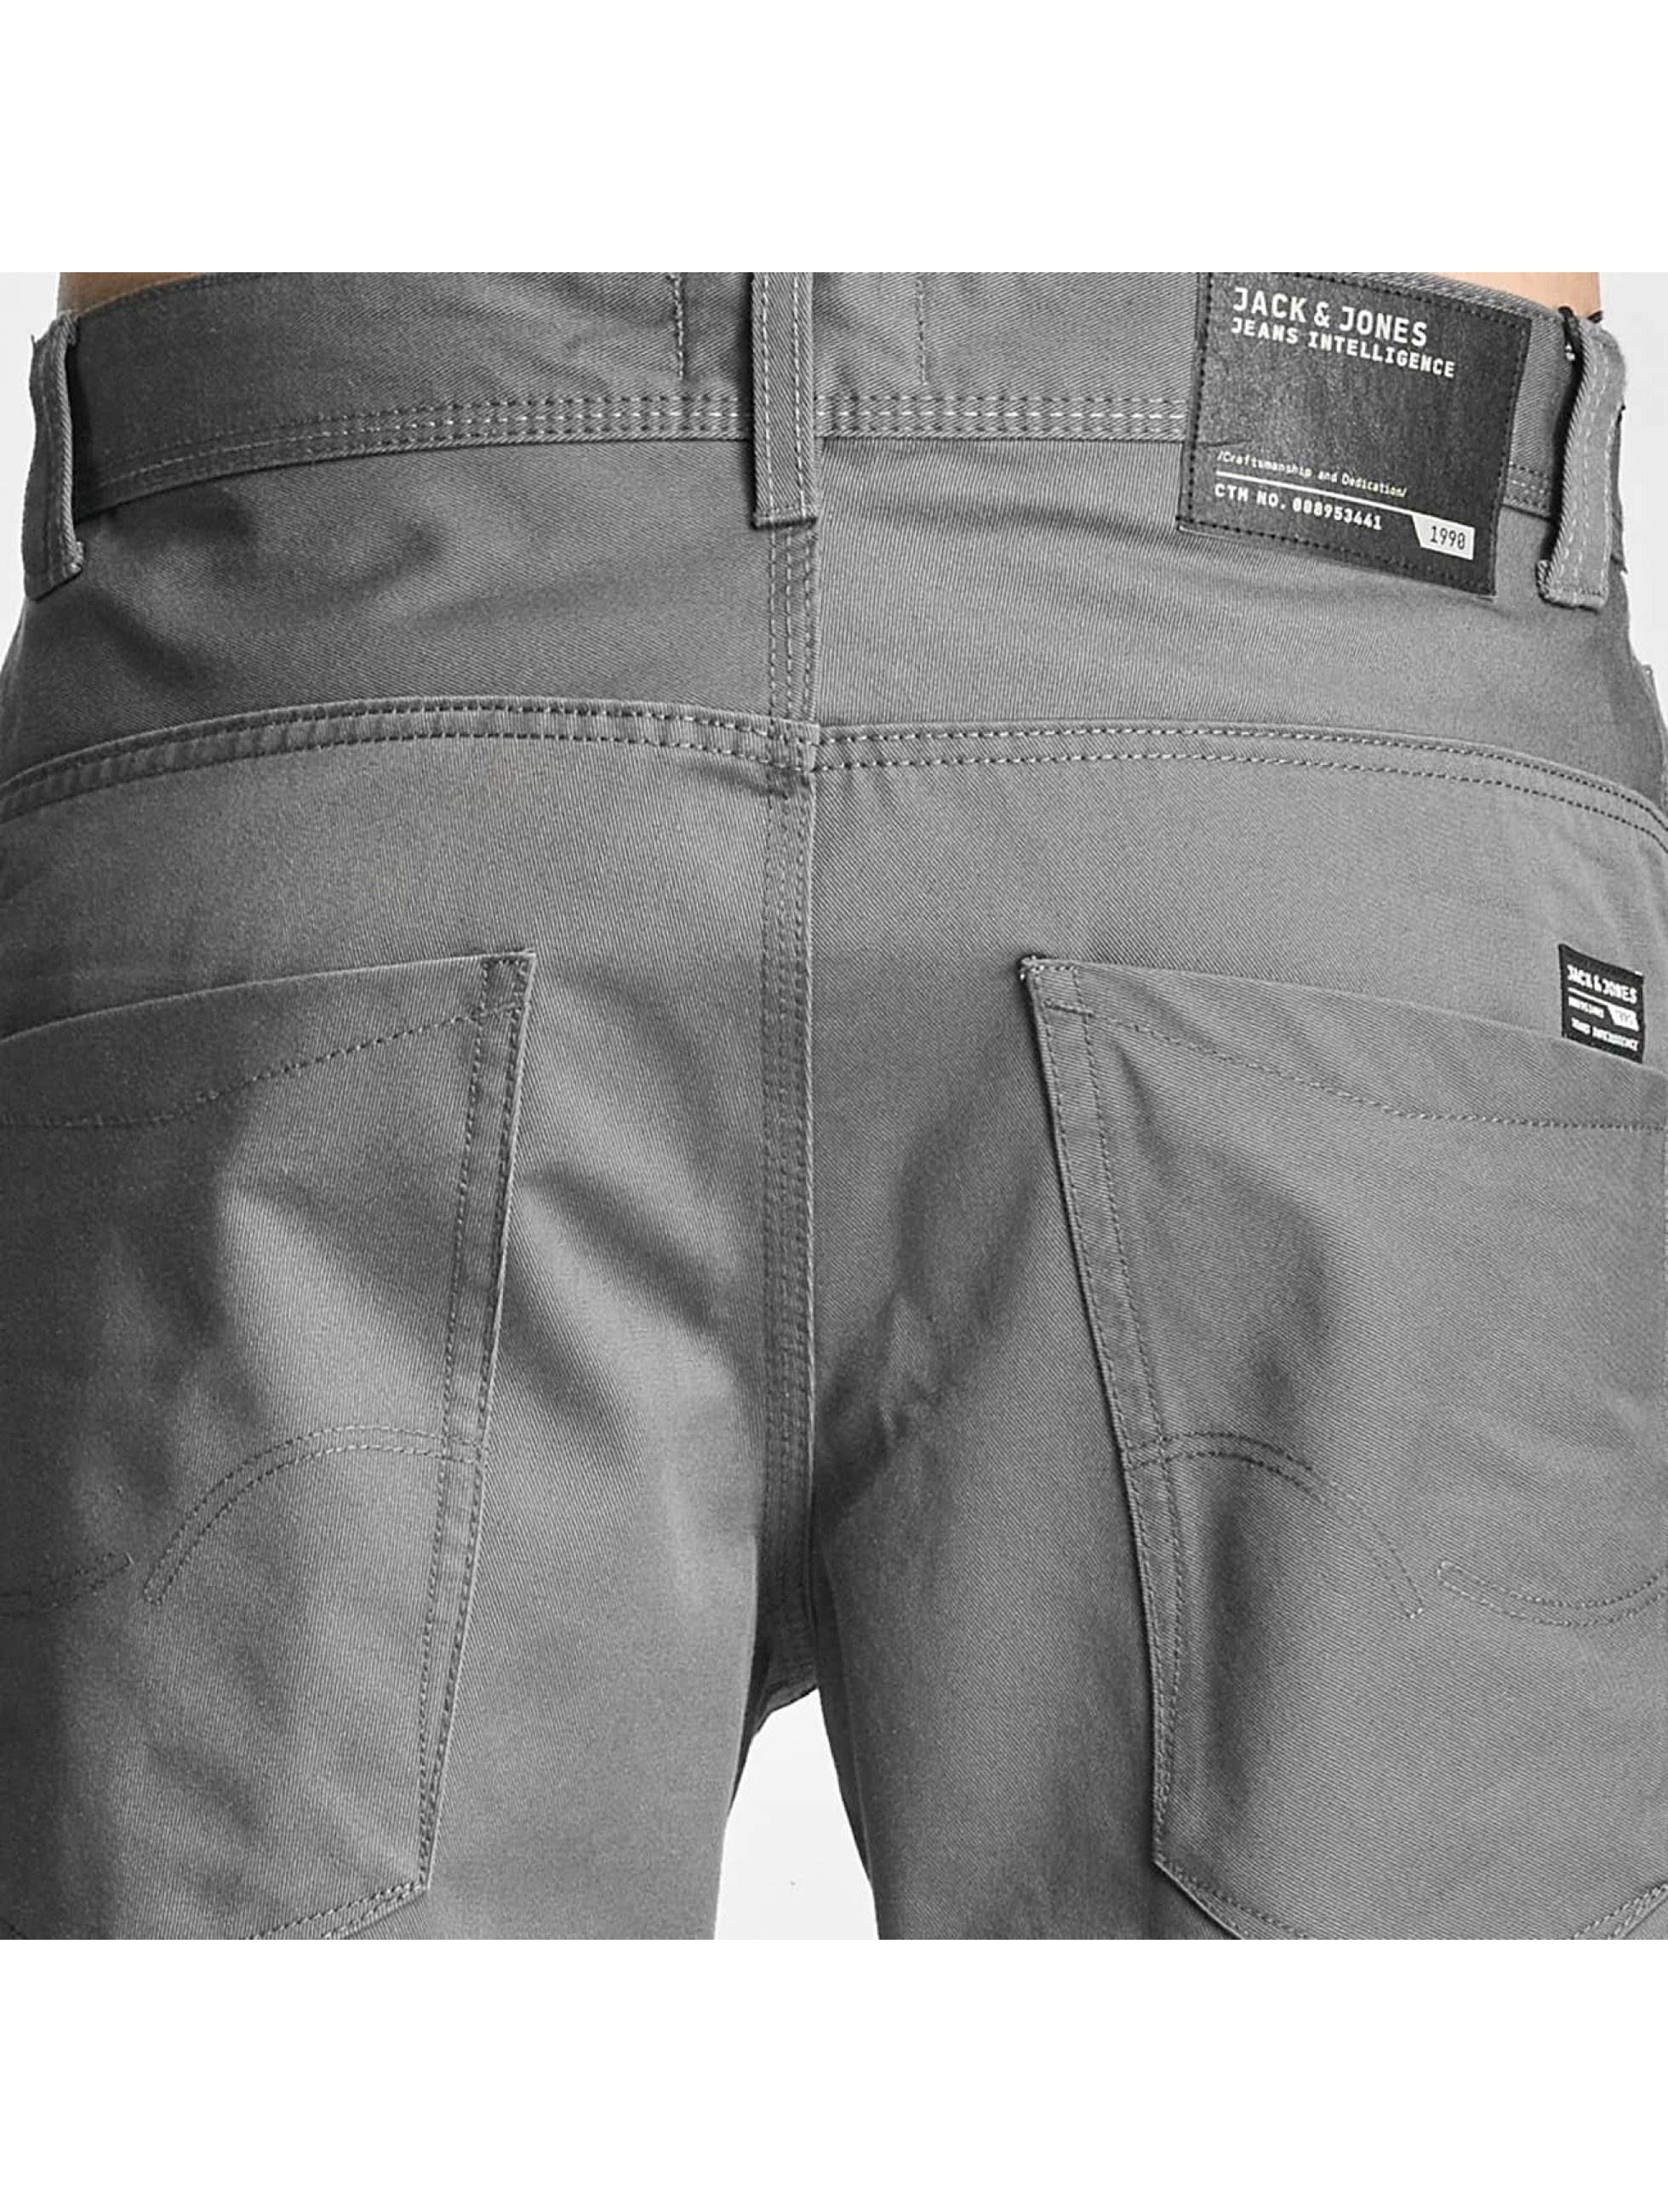 Jack & Jones Short jjiSac grey